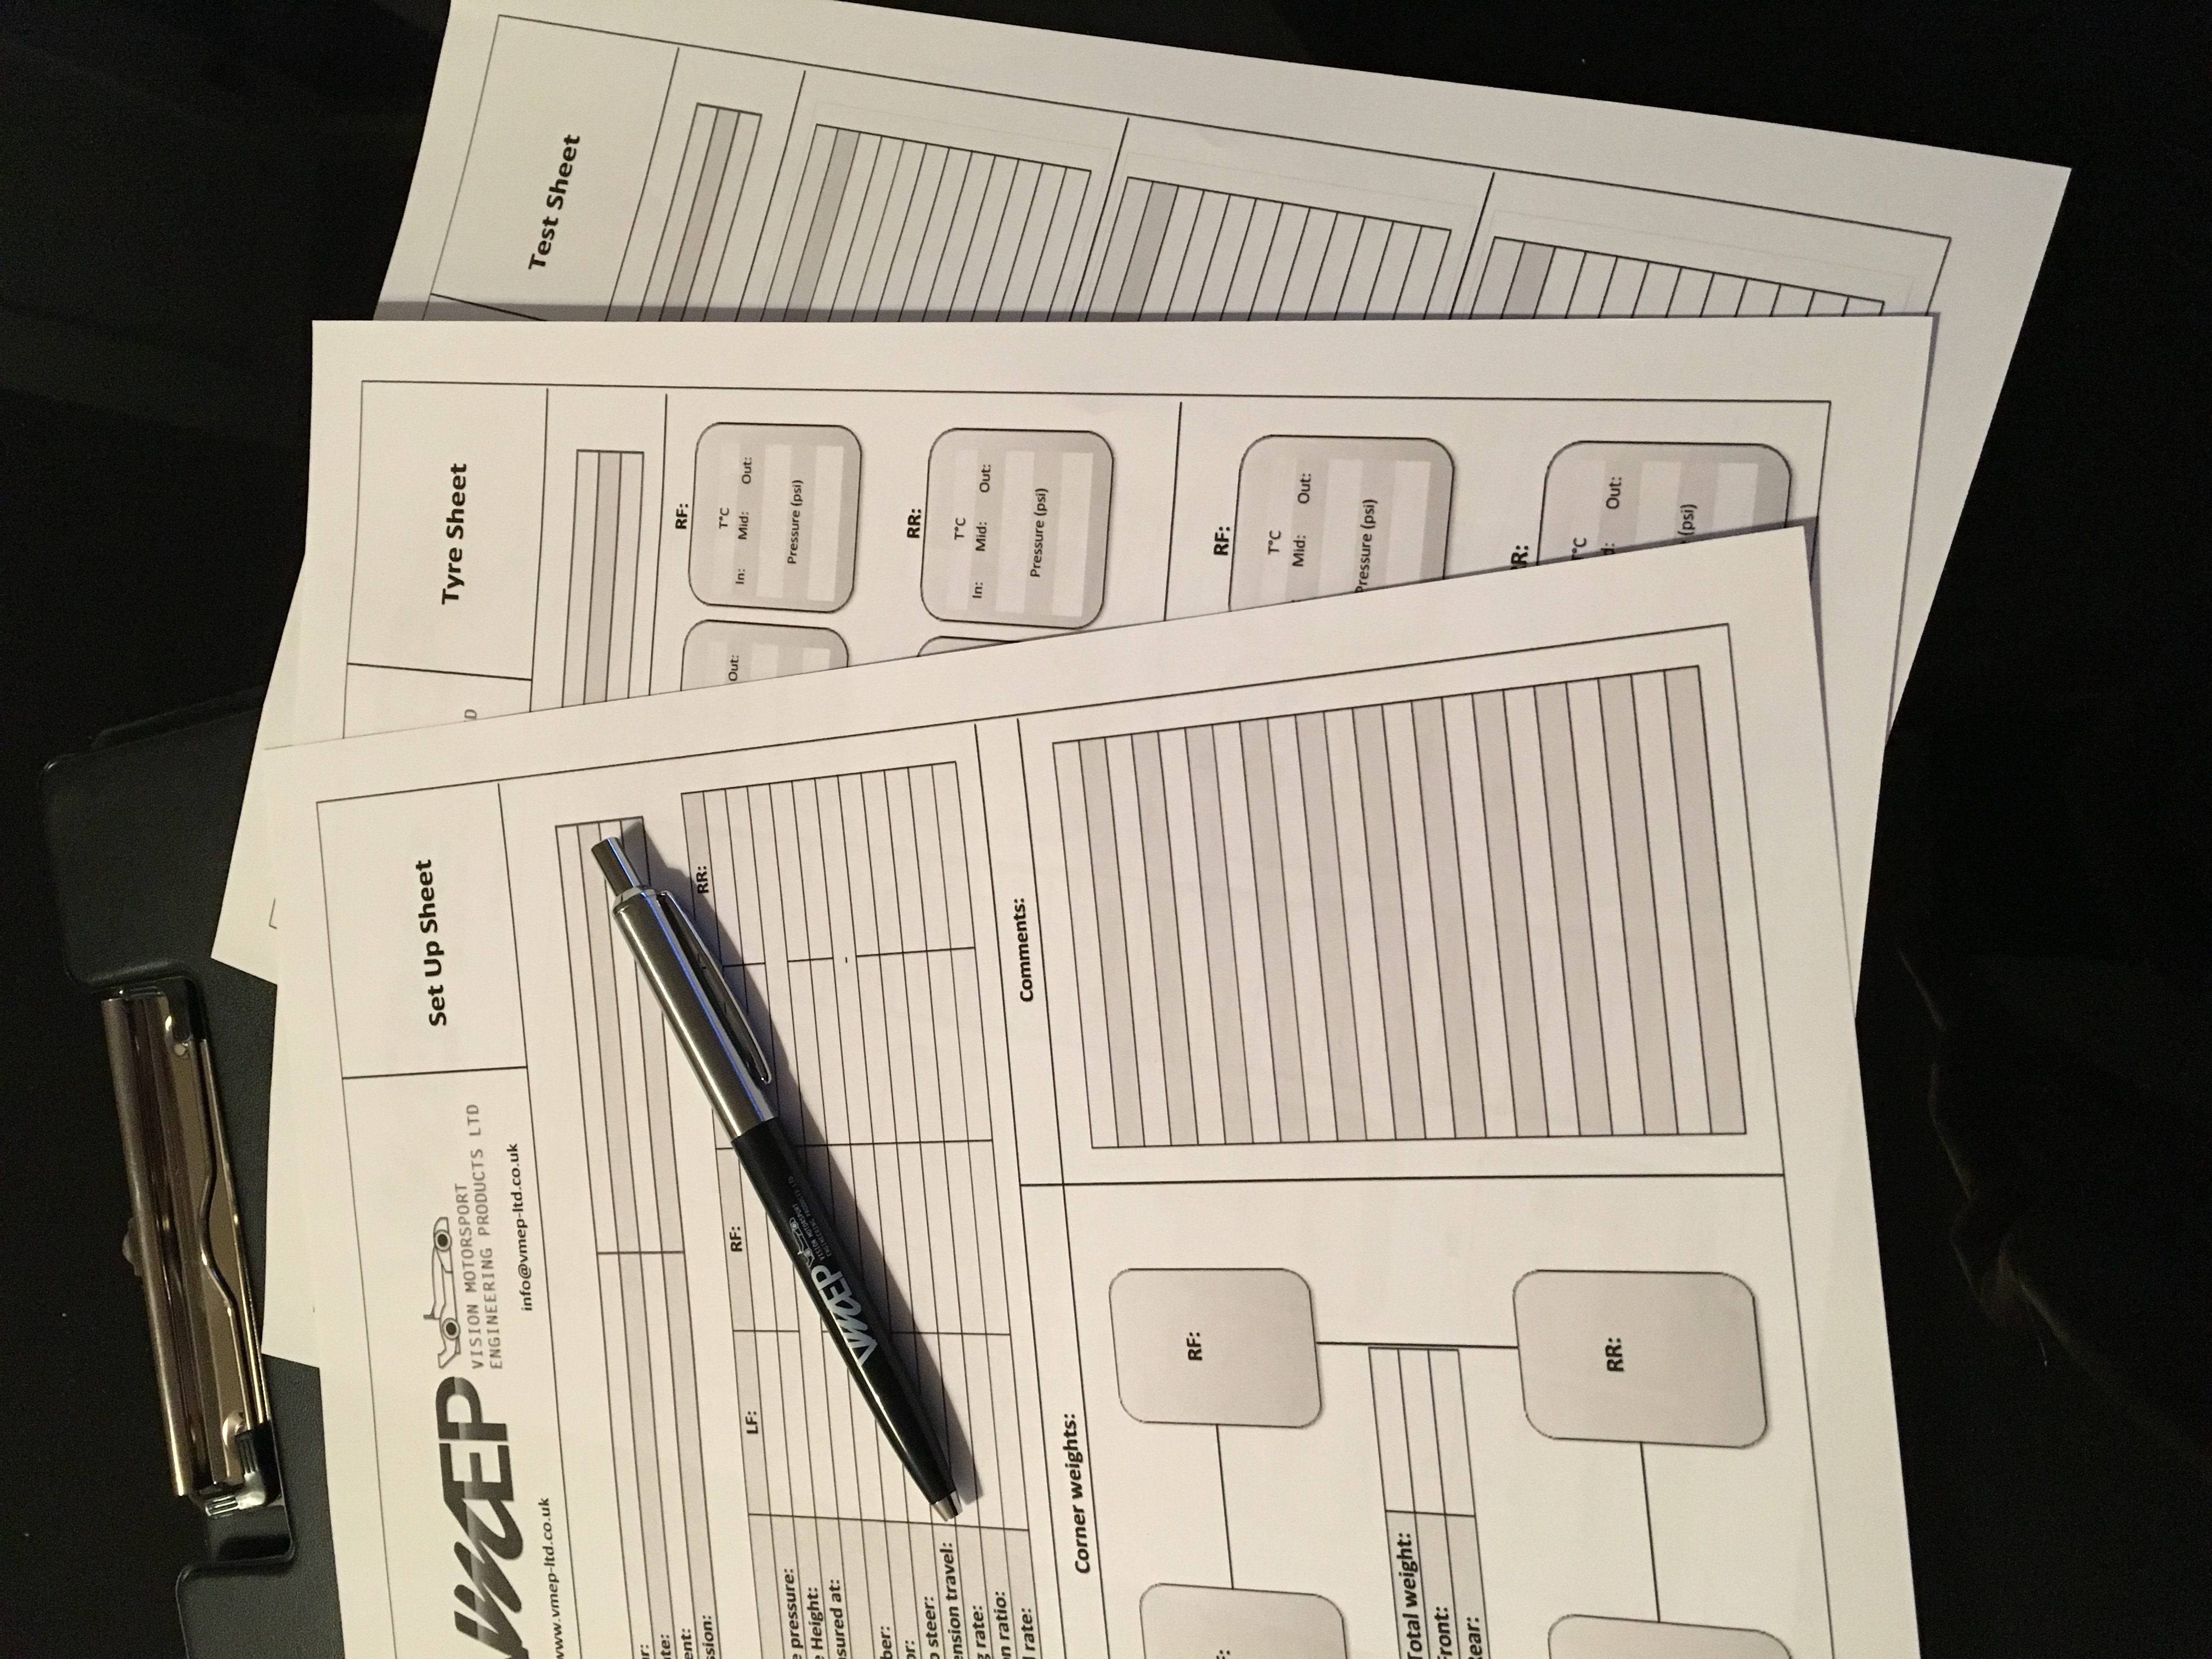 Race car set up sheets